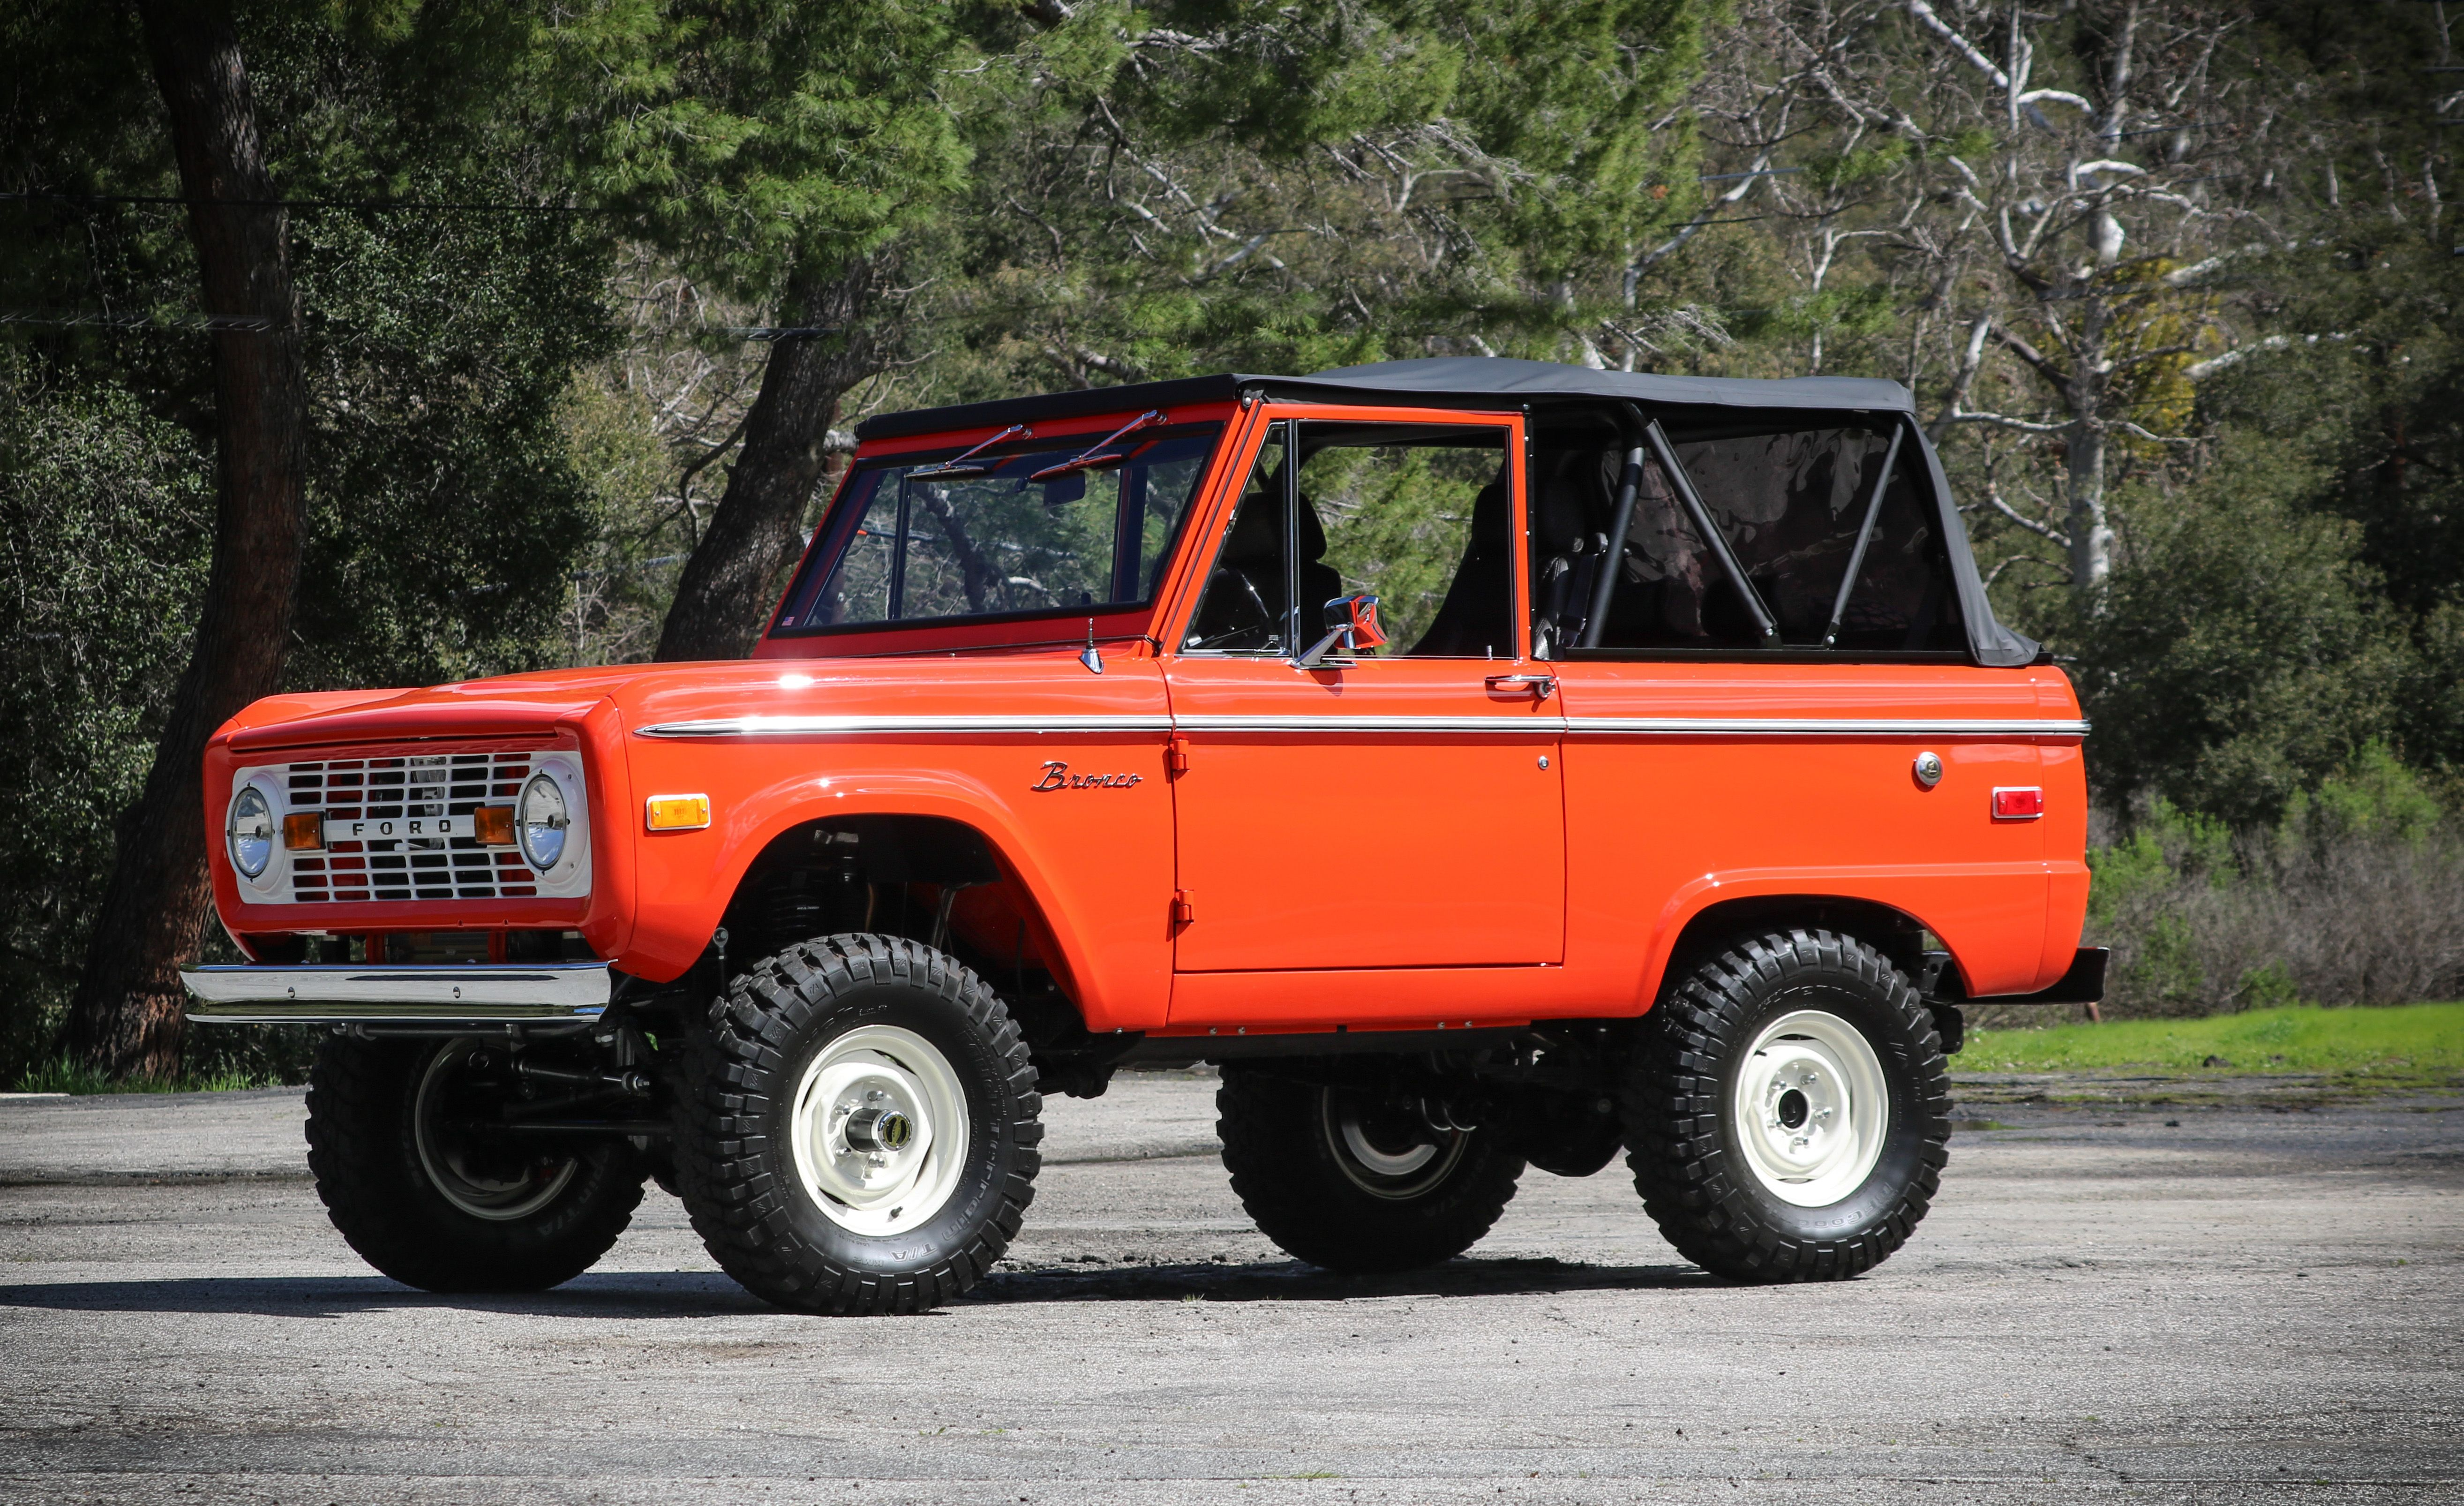 2019 Gateway Ford Bronco Is A Custom Rig Even A Purist Could Love